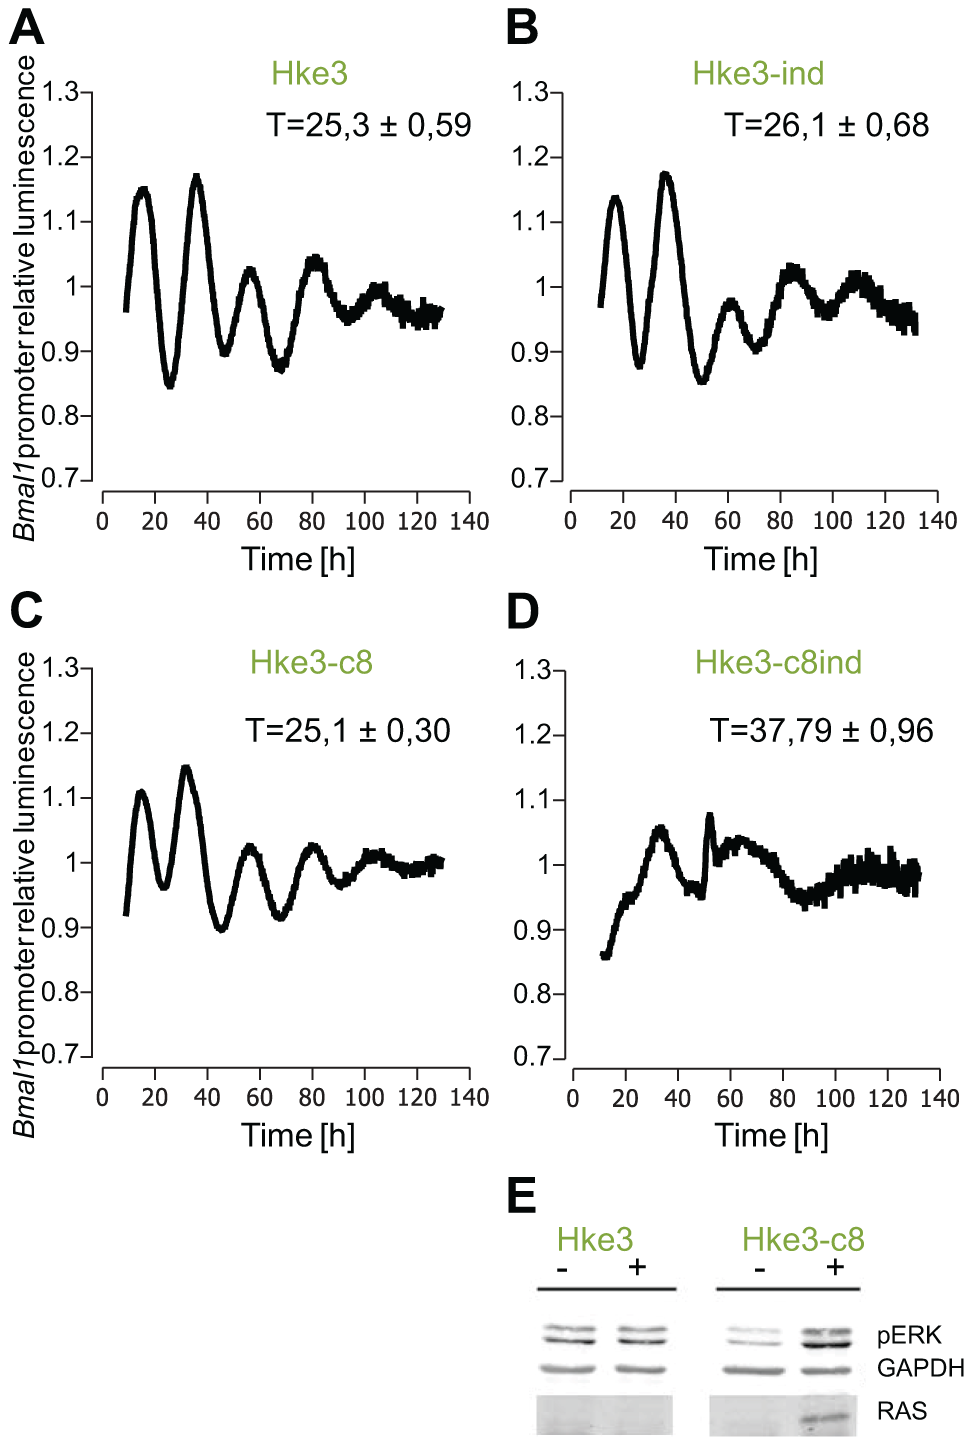 Effect of KRAS induction in HKe3 and HKe3 clone 8 cell lines.